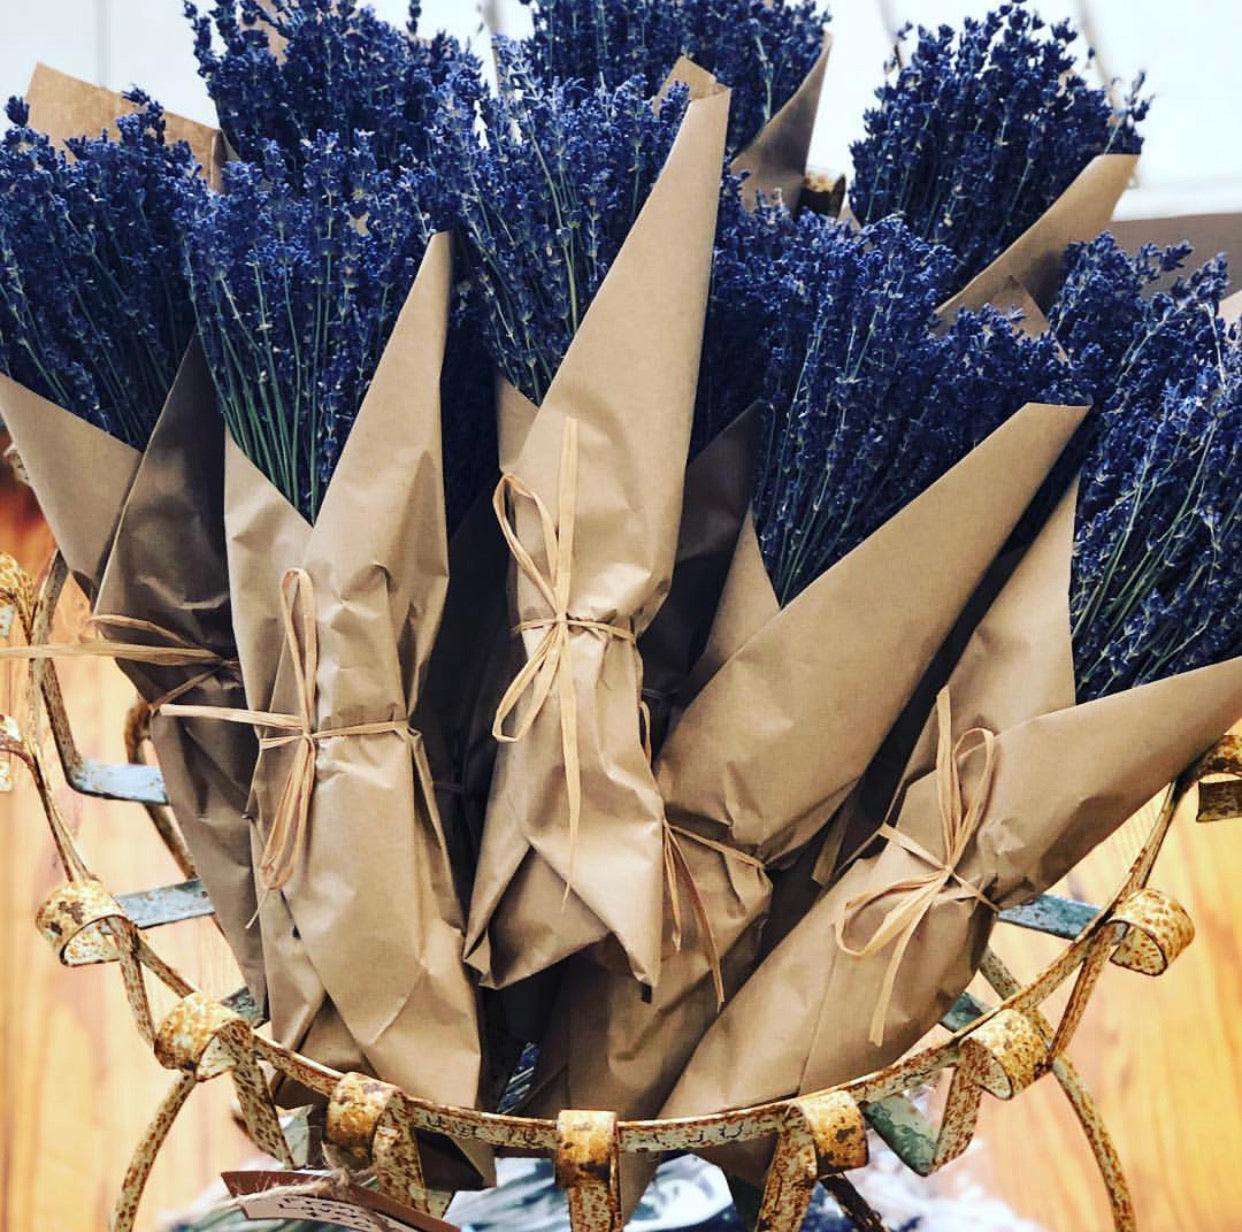 Pictured are several bundles of French lavender. They are wrapped in crisp brown paper and tied with twine.